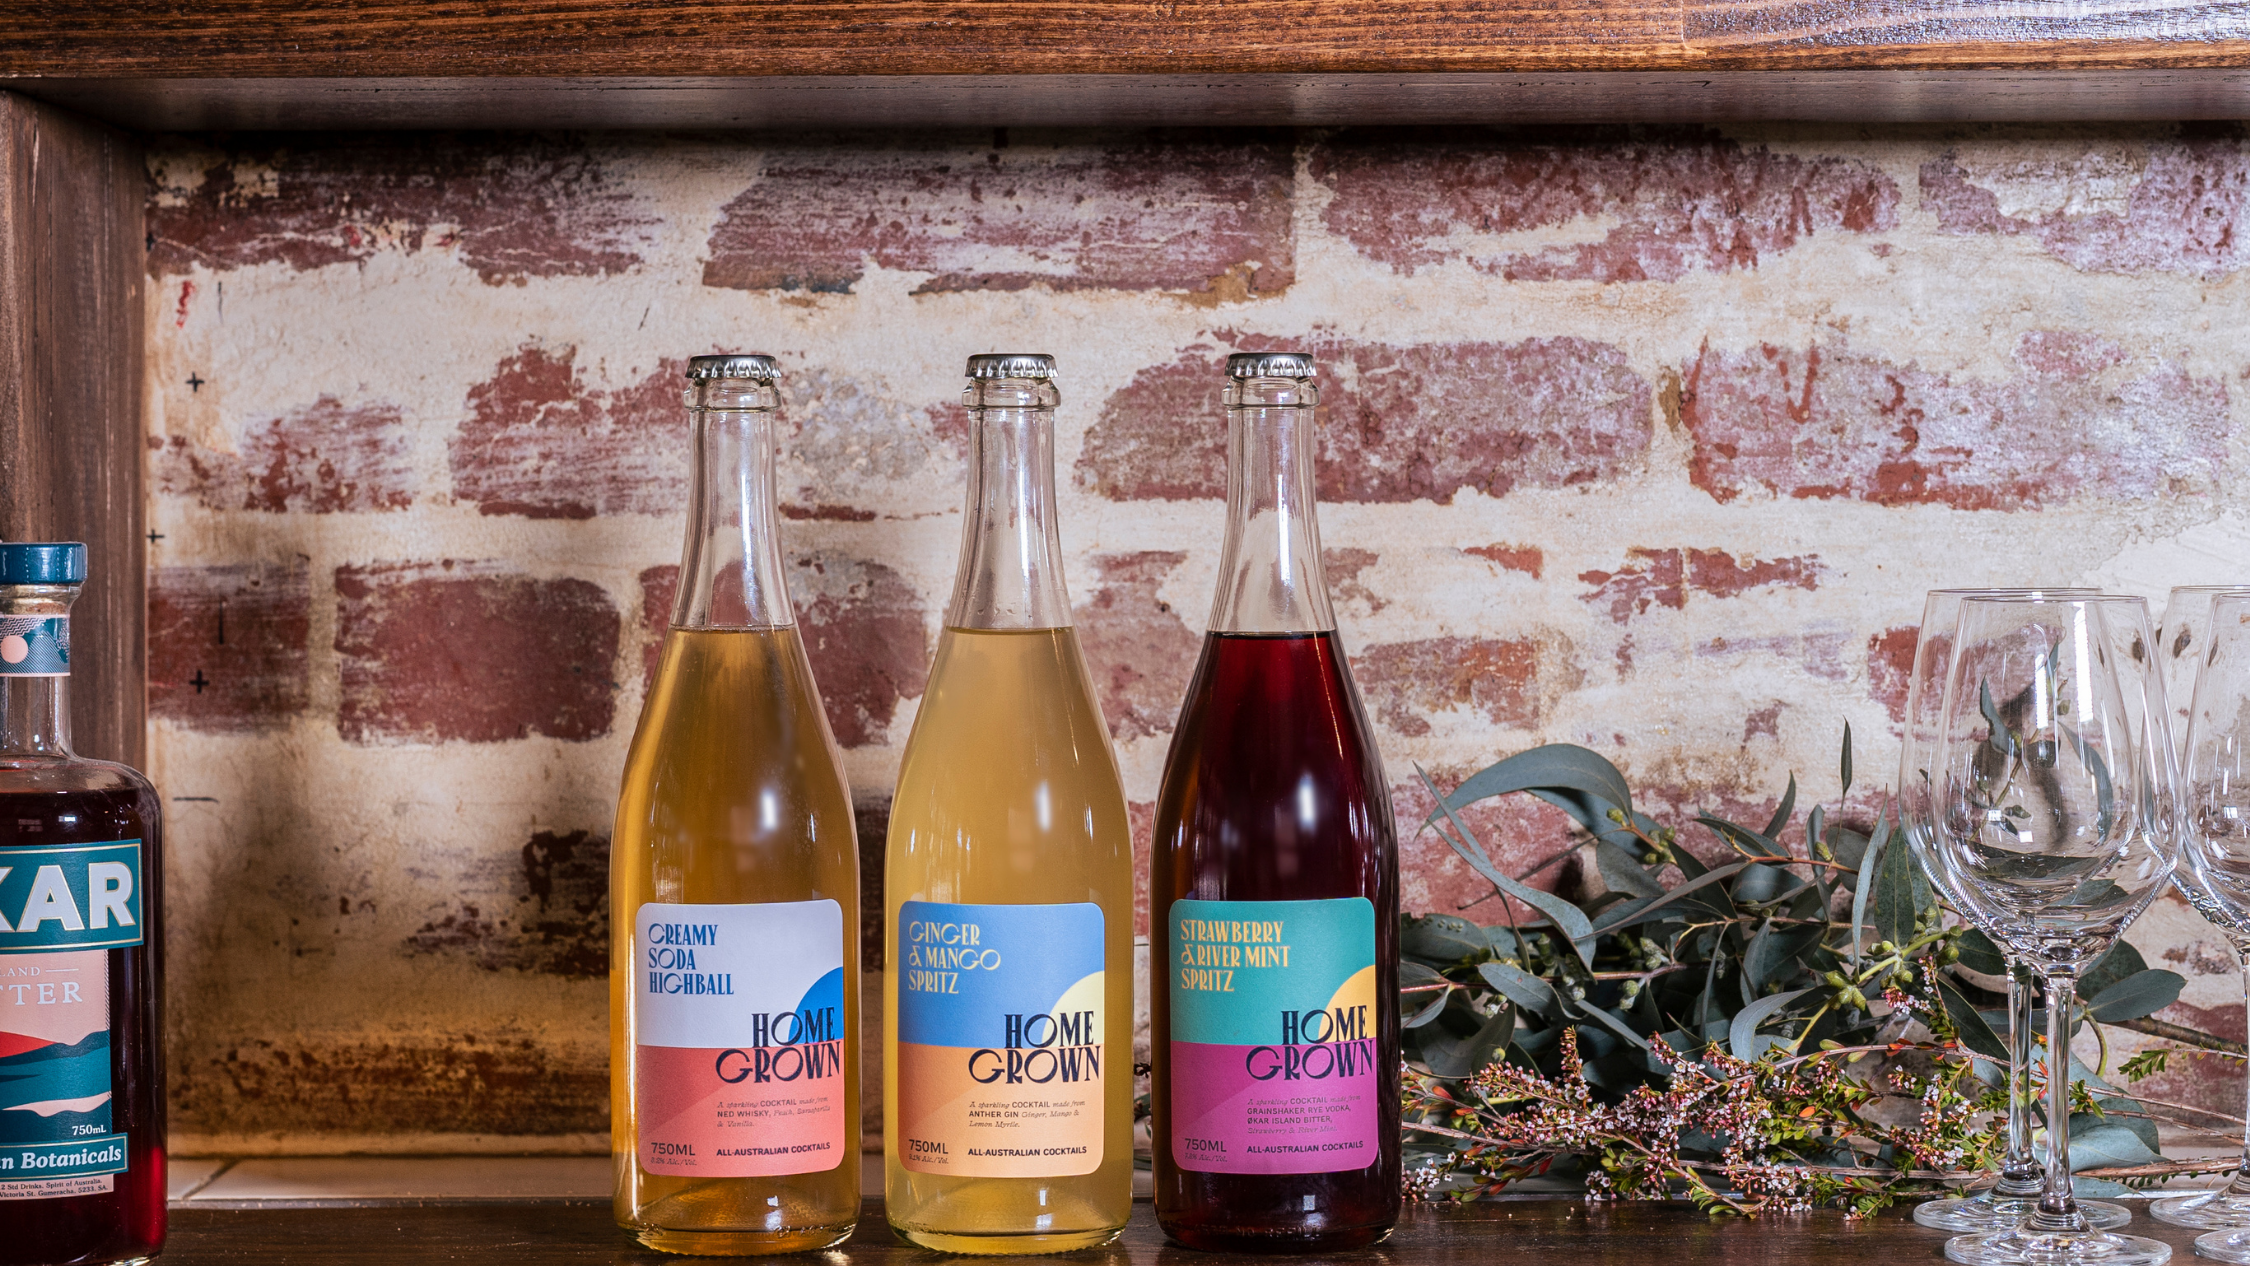 Worksmith launches Home Grown, a range of pre-made spritz cocktails